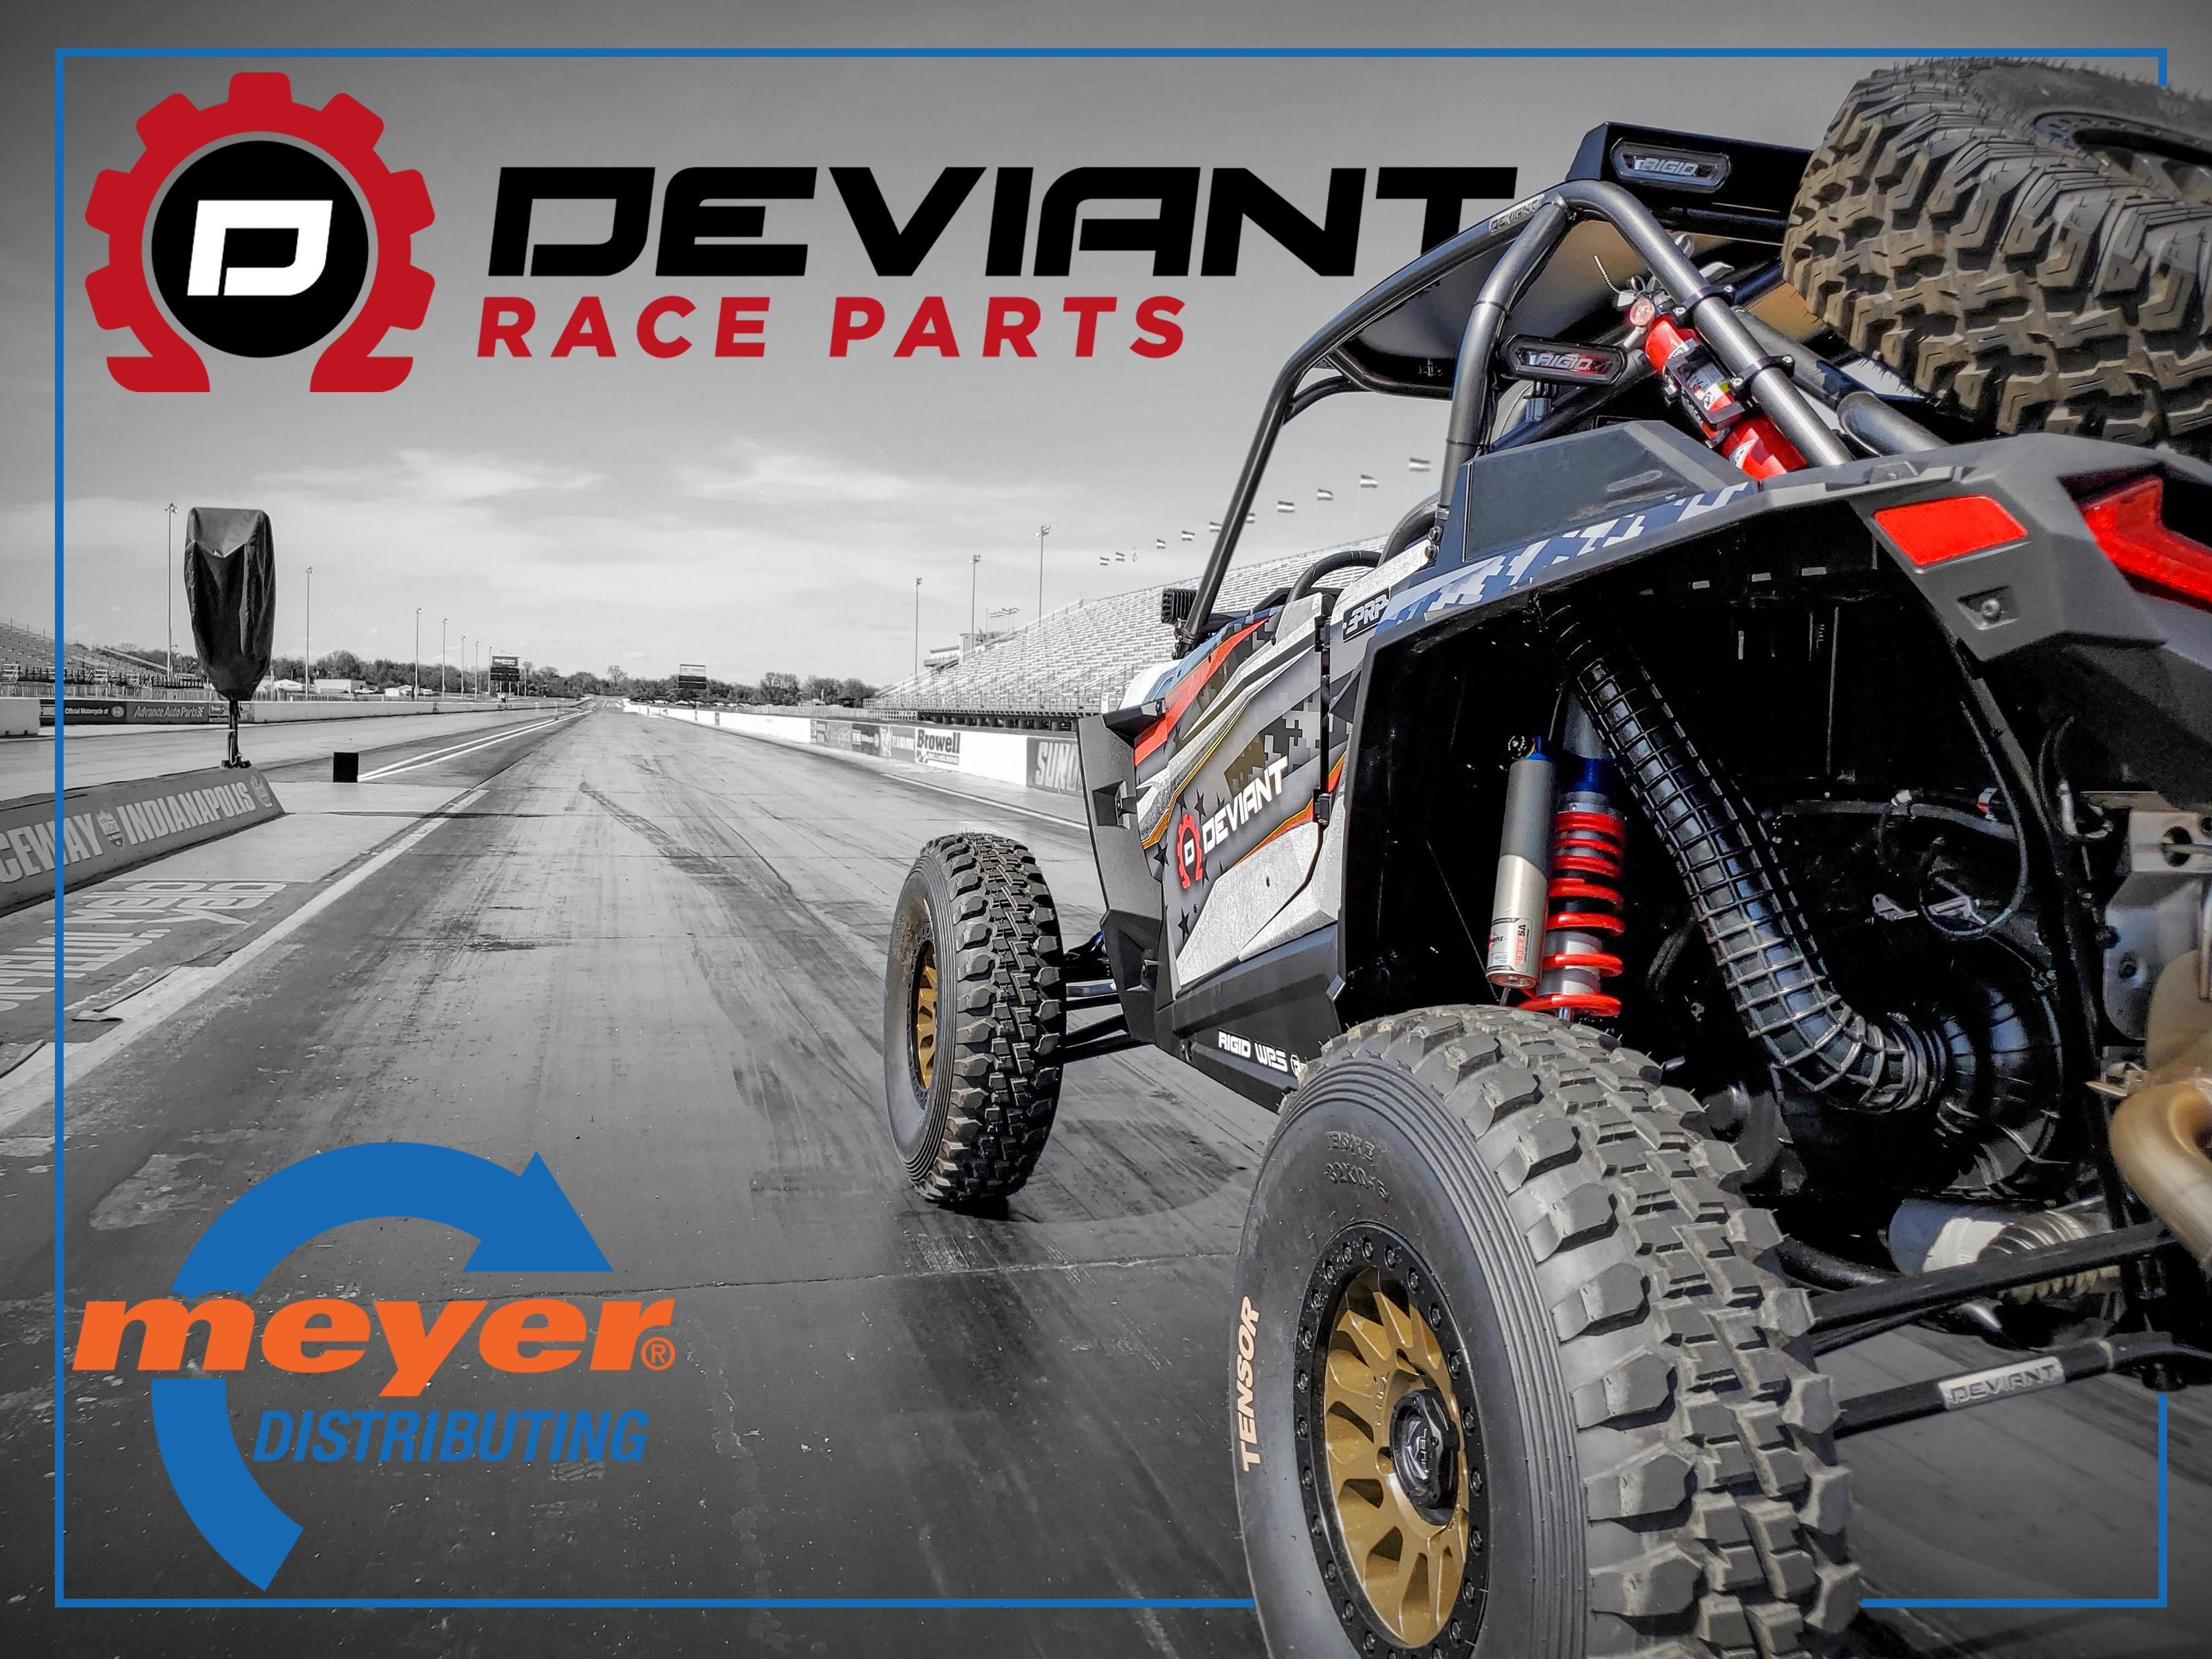 Need a source for the Deviant Race Parts product line